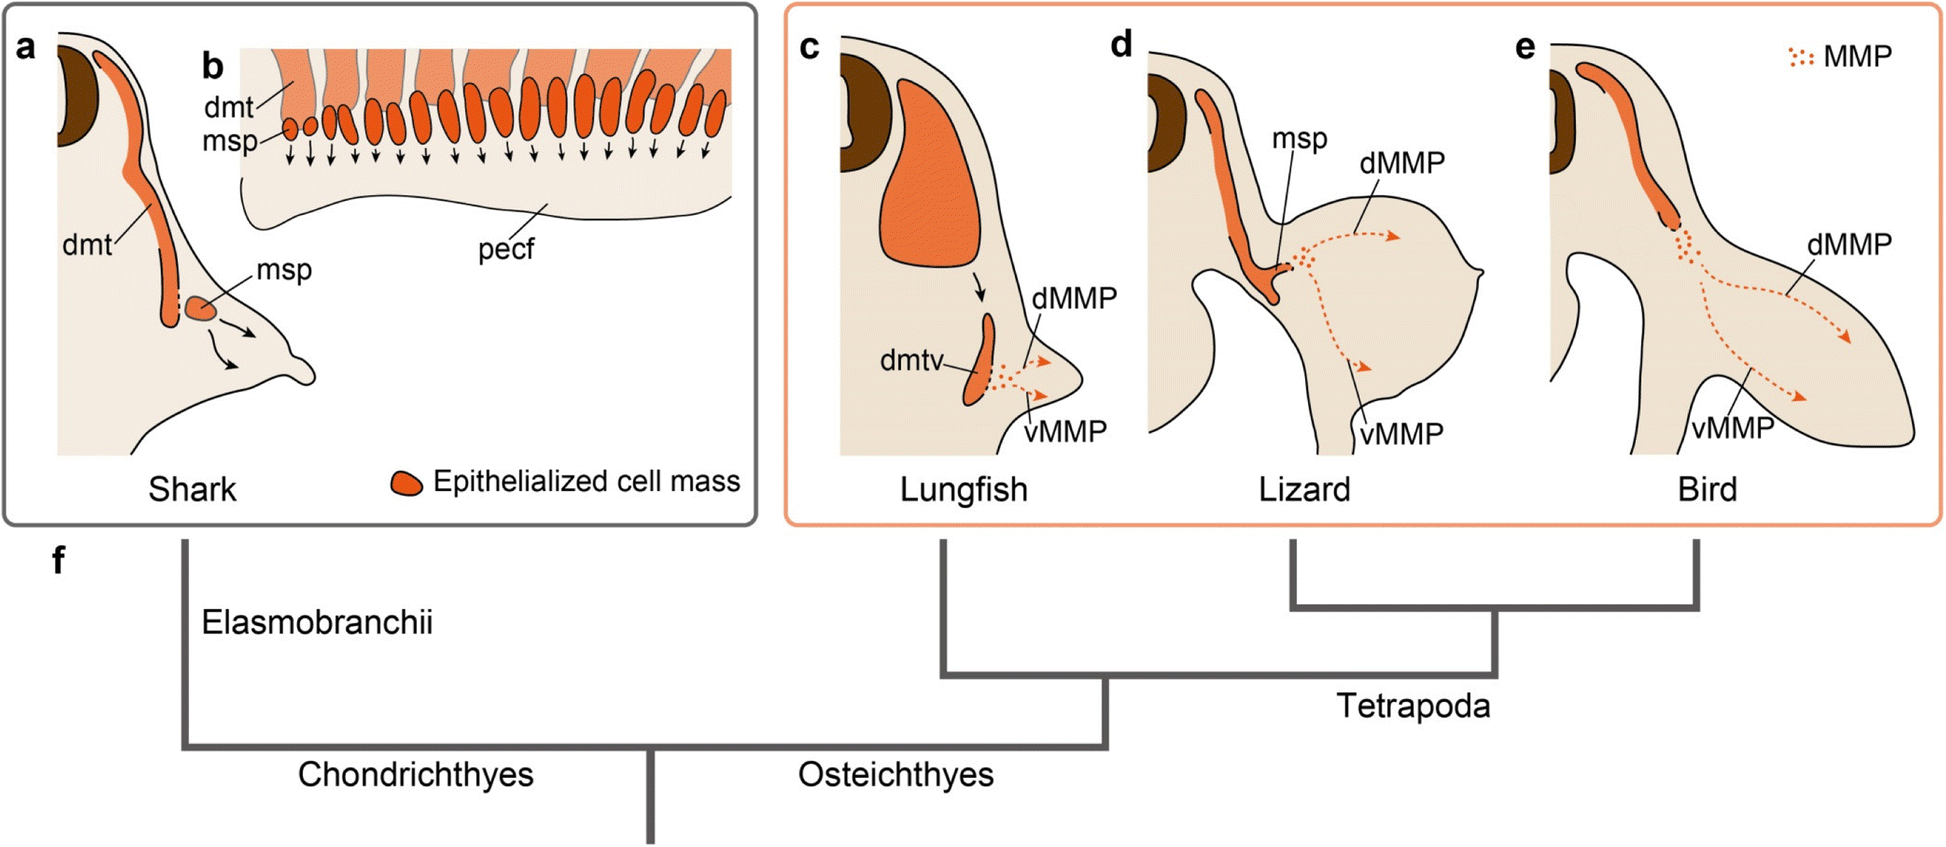 Evolution Of The Muscular System In Tetrapod Limbs Zoological Chicken Wing Tendon Diagram Body Systems Fig 5